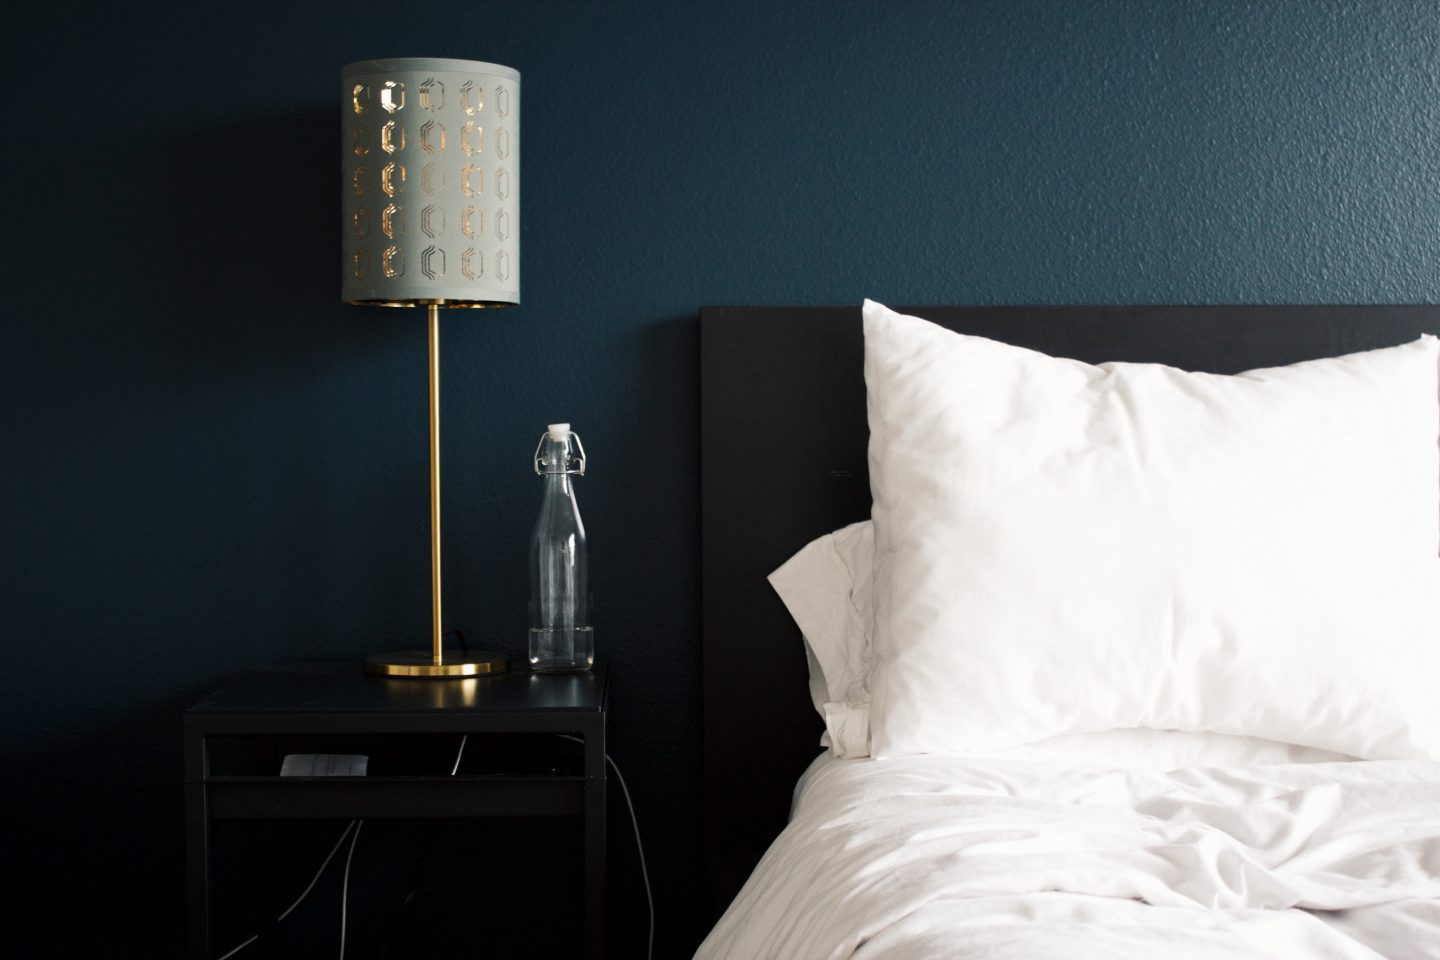 Bedroom Colours To Make You Feel Calm At Bedtime